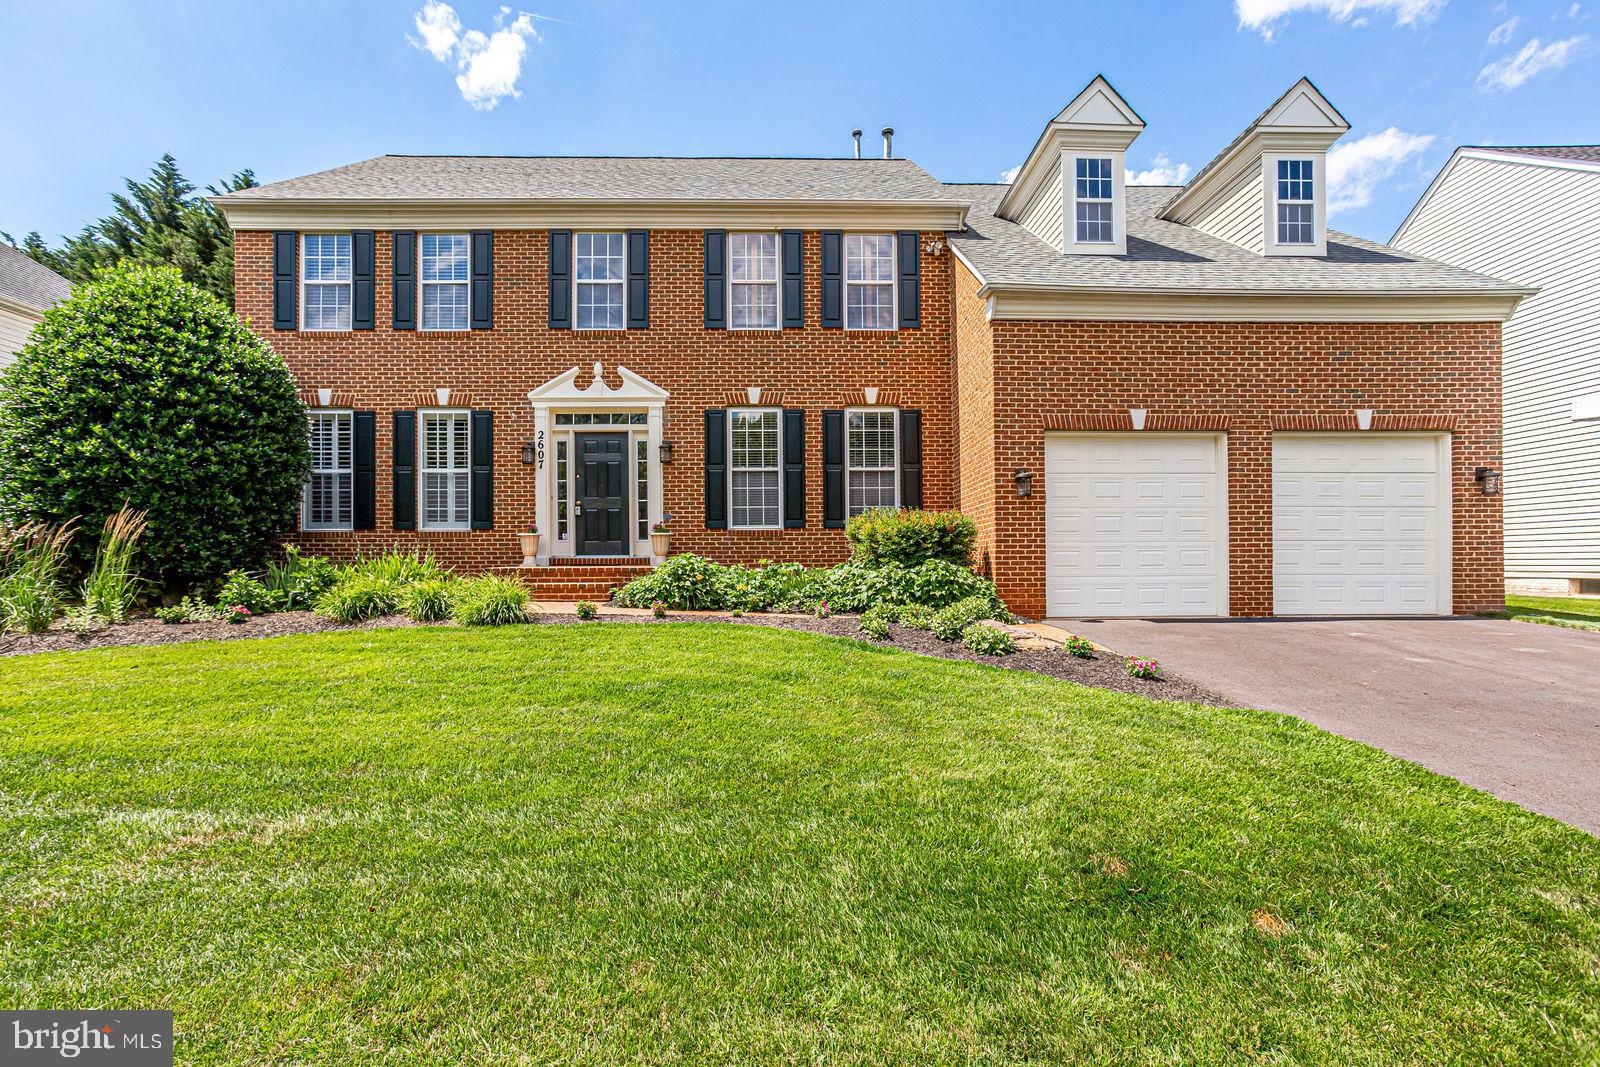 Welcome to this Fabulous Home in Manor Oaks! You~ll love the warmth of this beautifully updated home